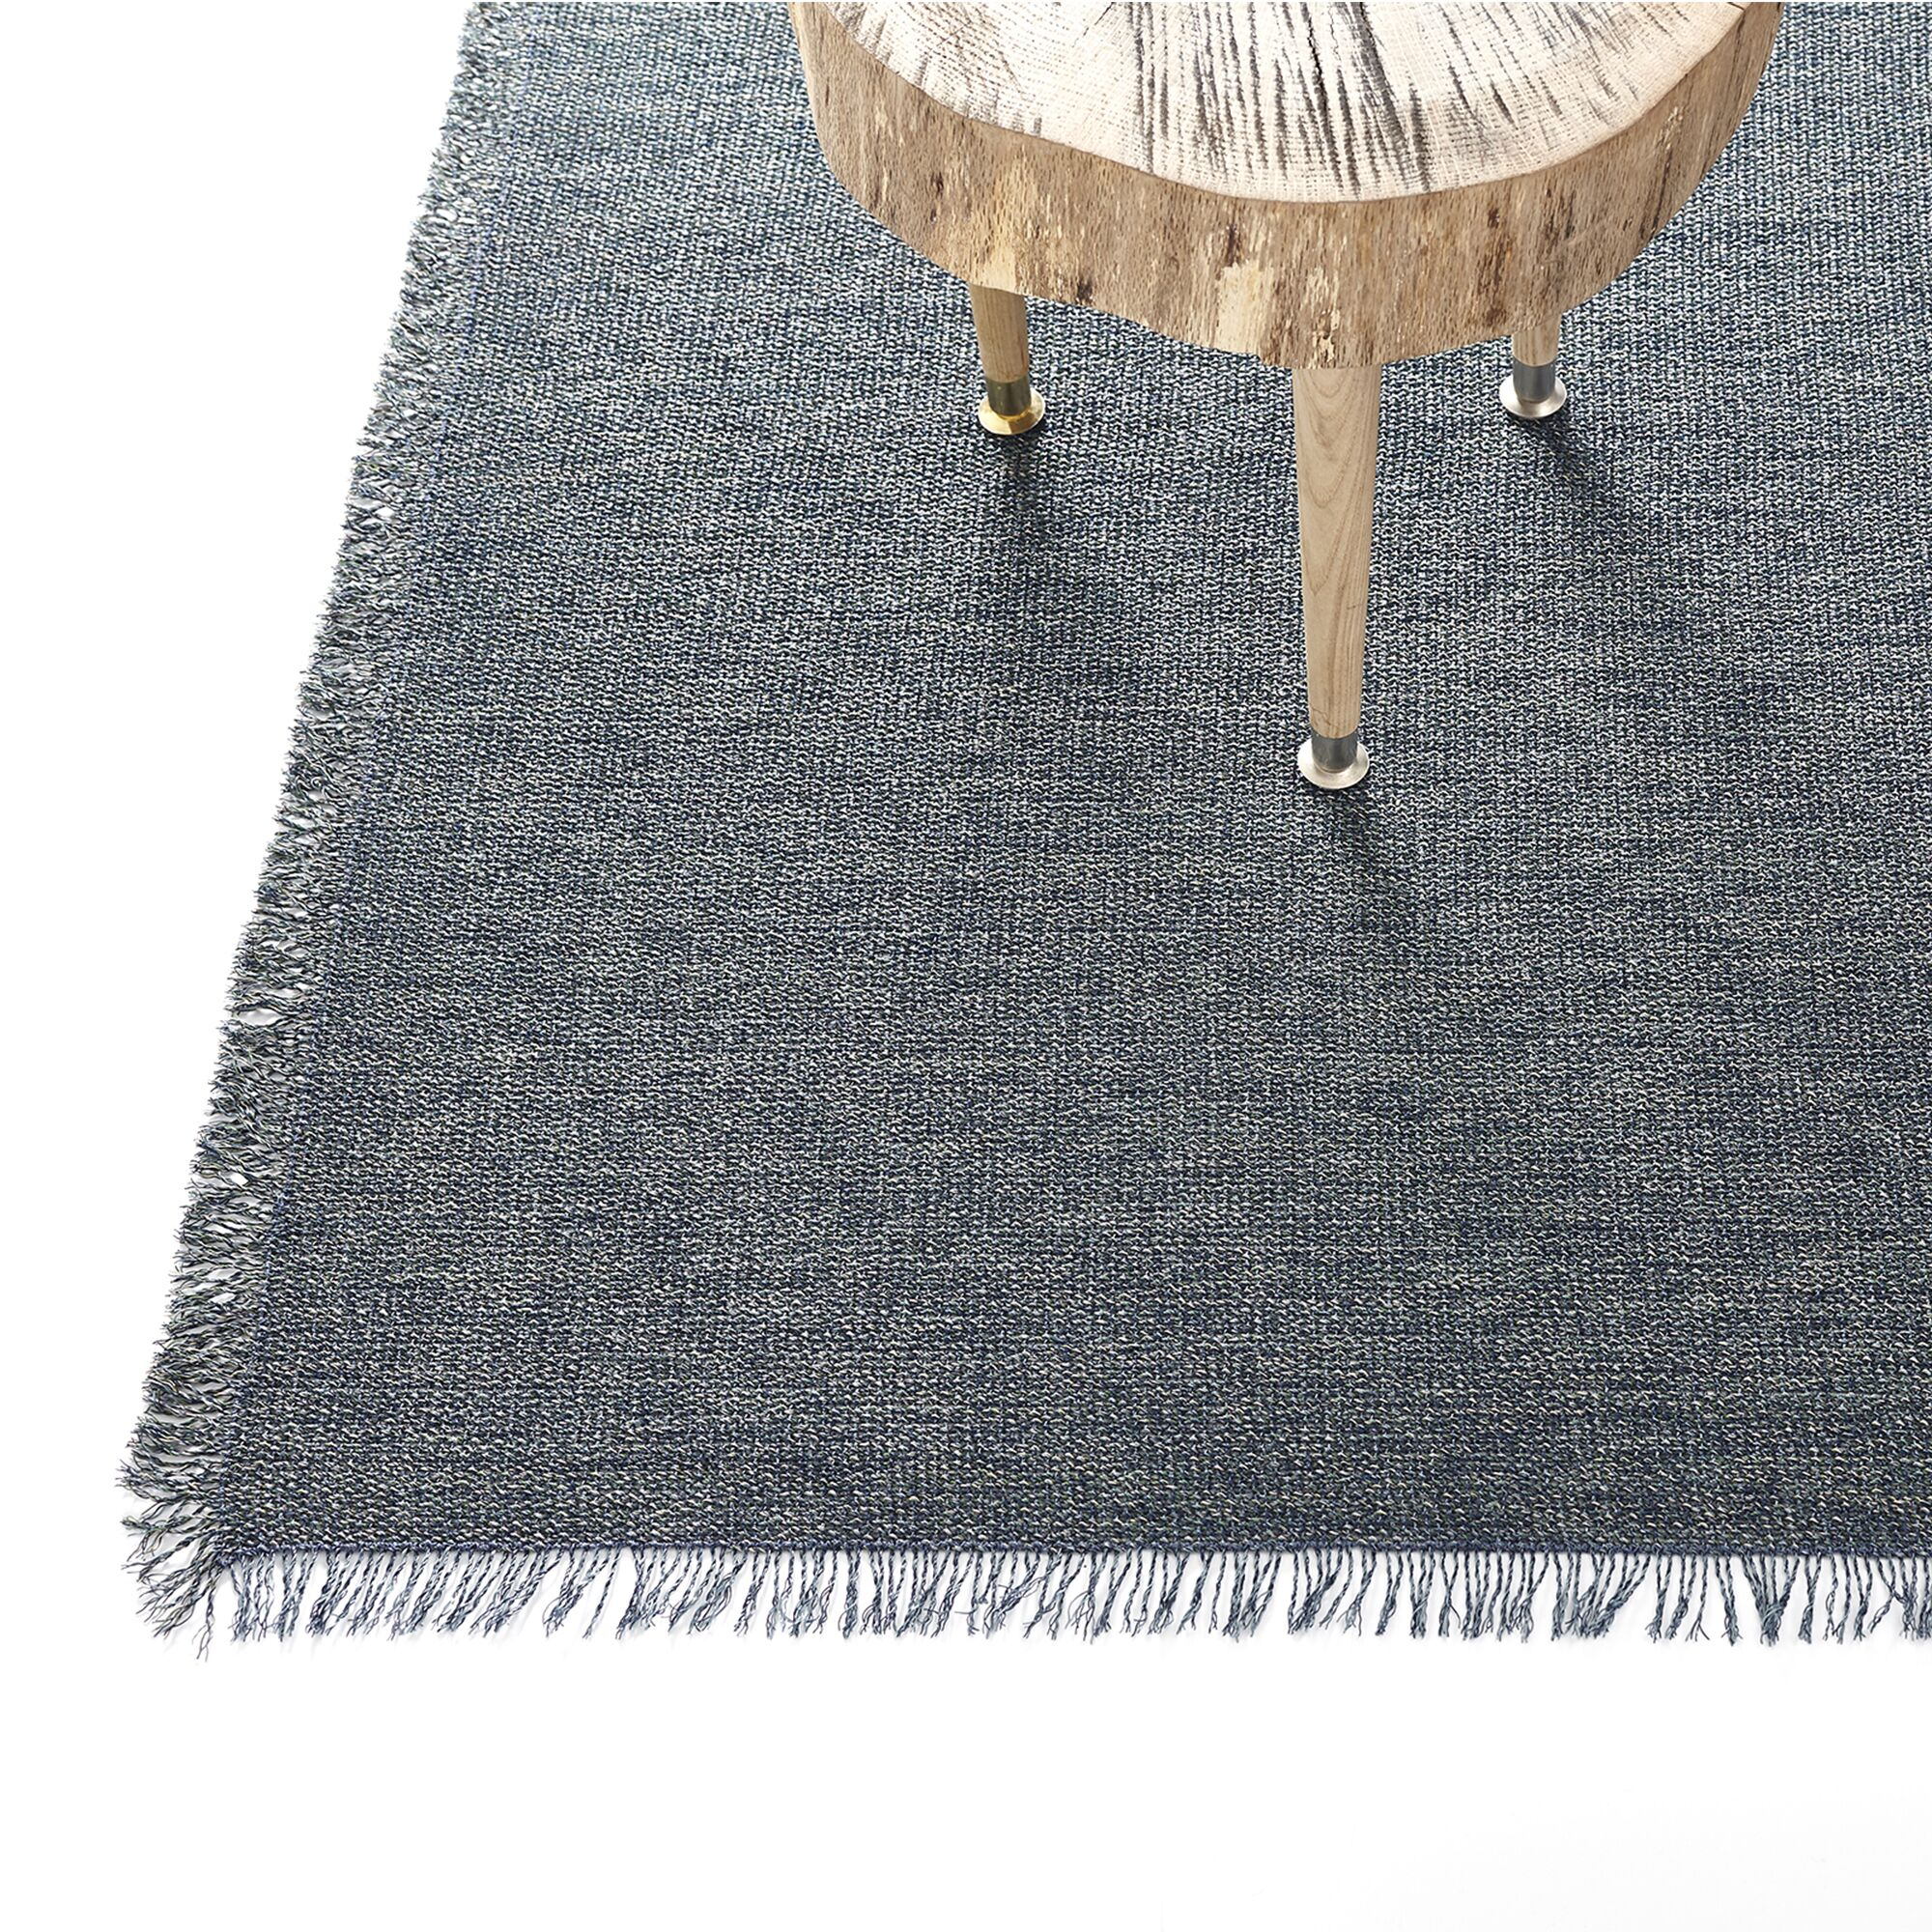 Market Fringe Gray Indoor/Outdoor Area Rug Rug Size: Rectangle 2'5